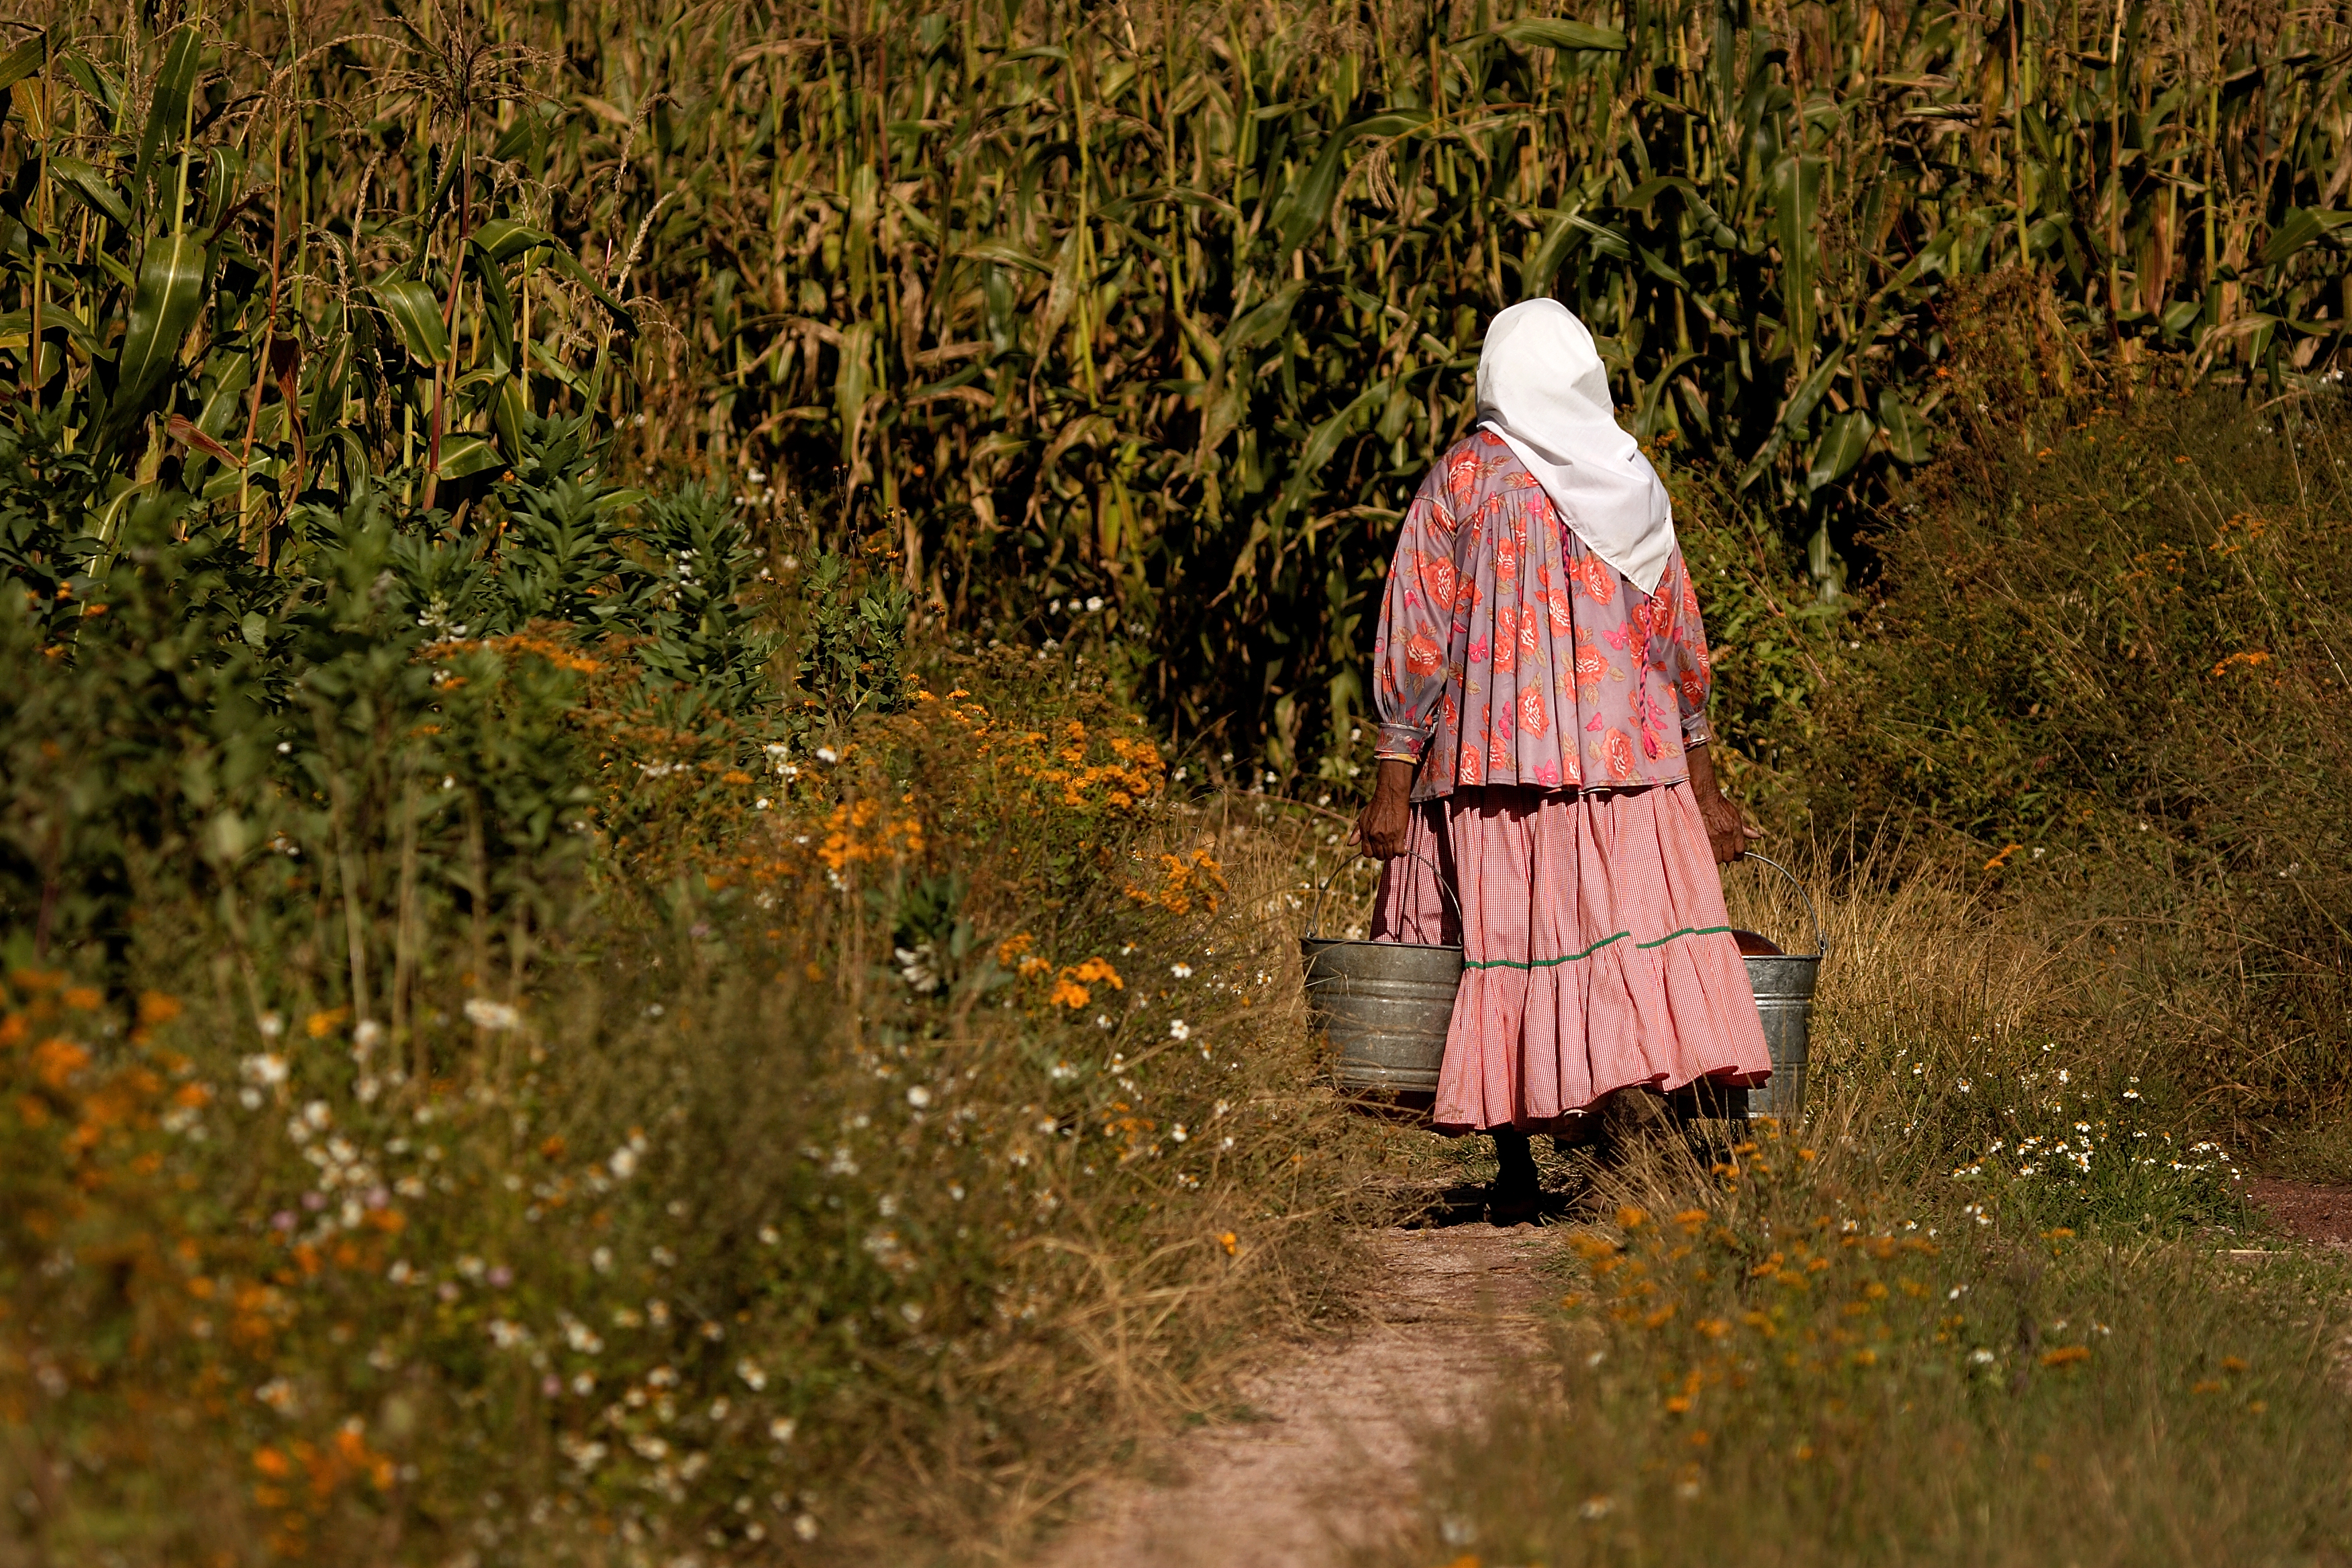 Lady Carrying Pails in Field